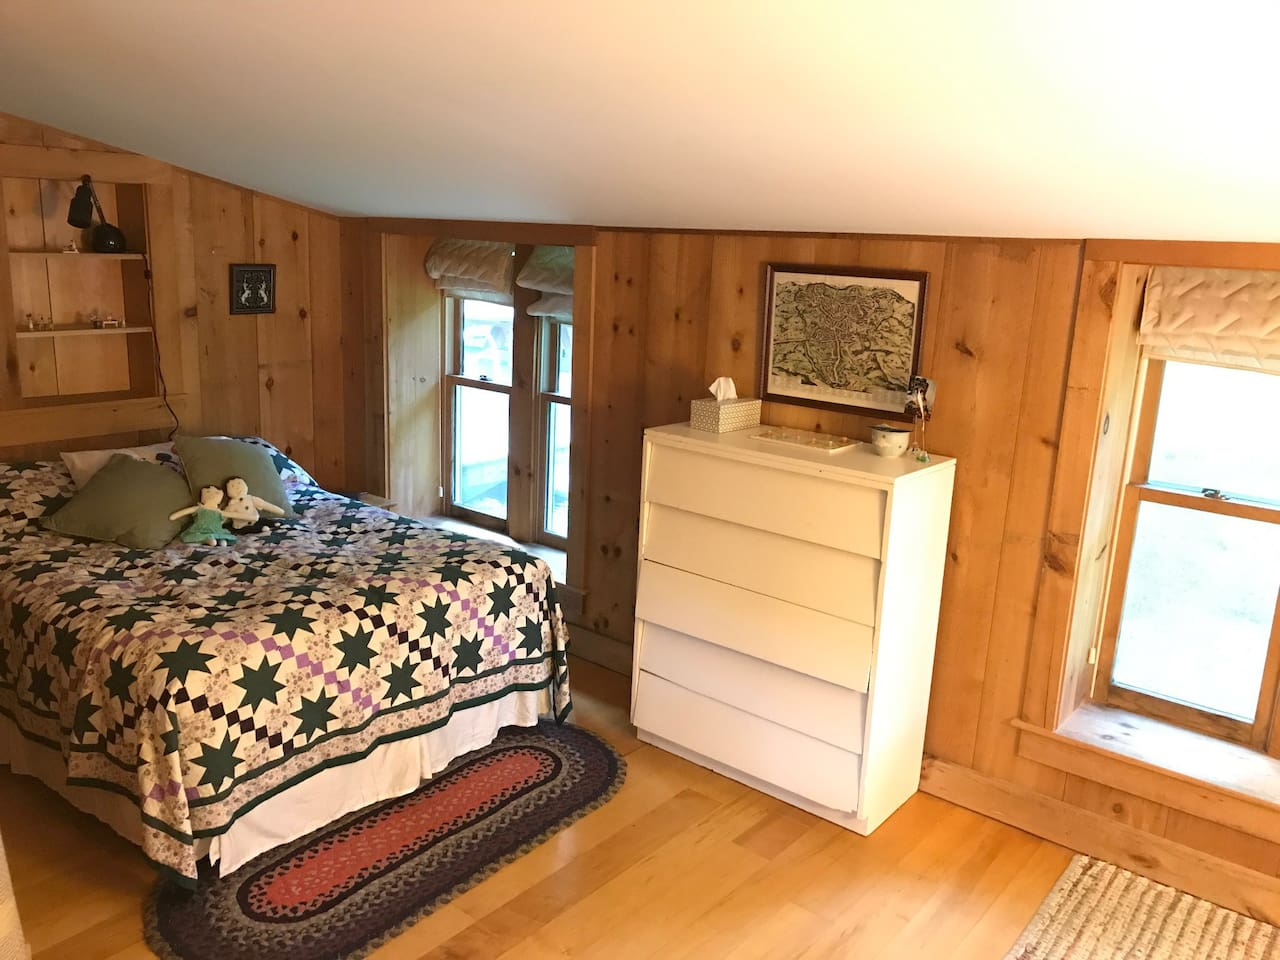 Full bed with bureau, windows look out to beautiful yard and pond